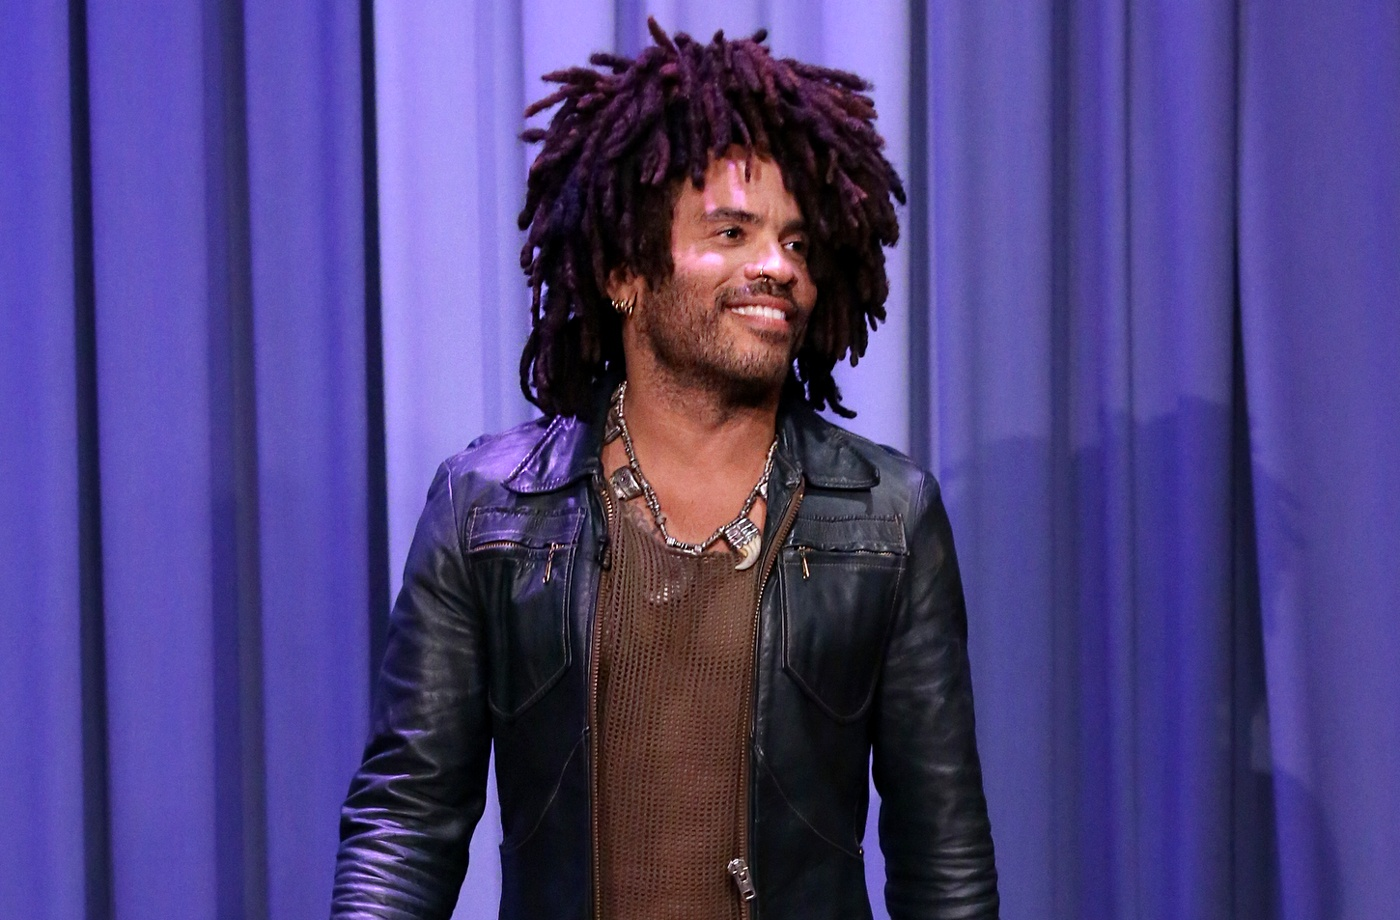 Thumbnail for Lenny Kravitz gets last laugh: Blanket scarfs are bigger than ever